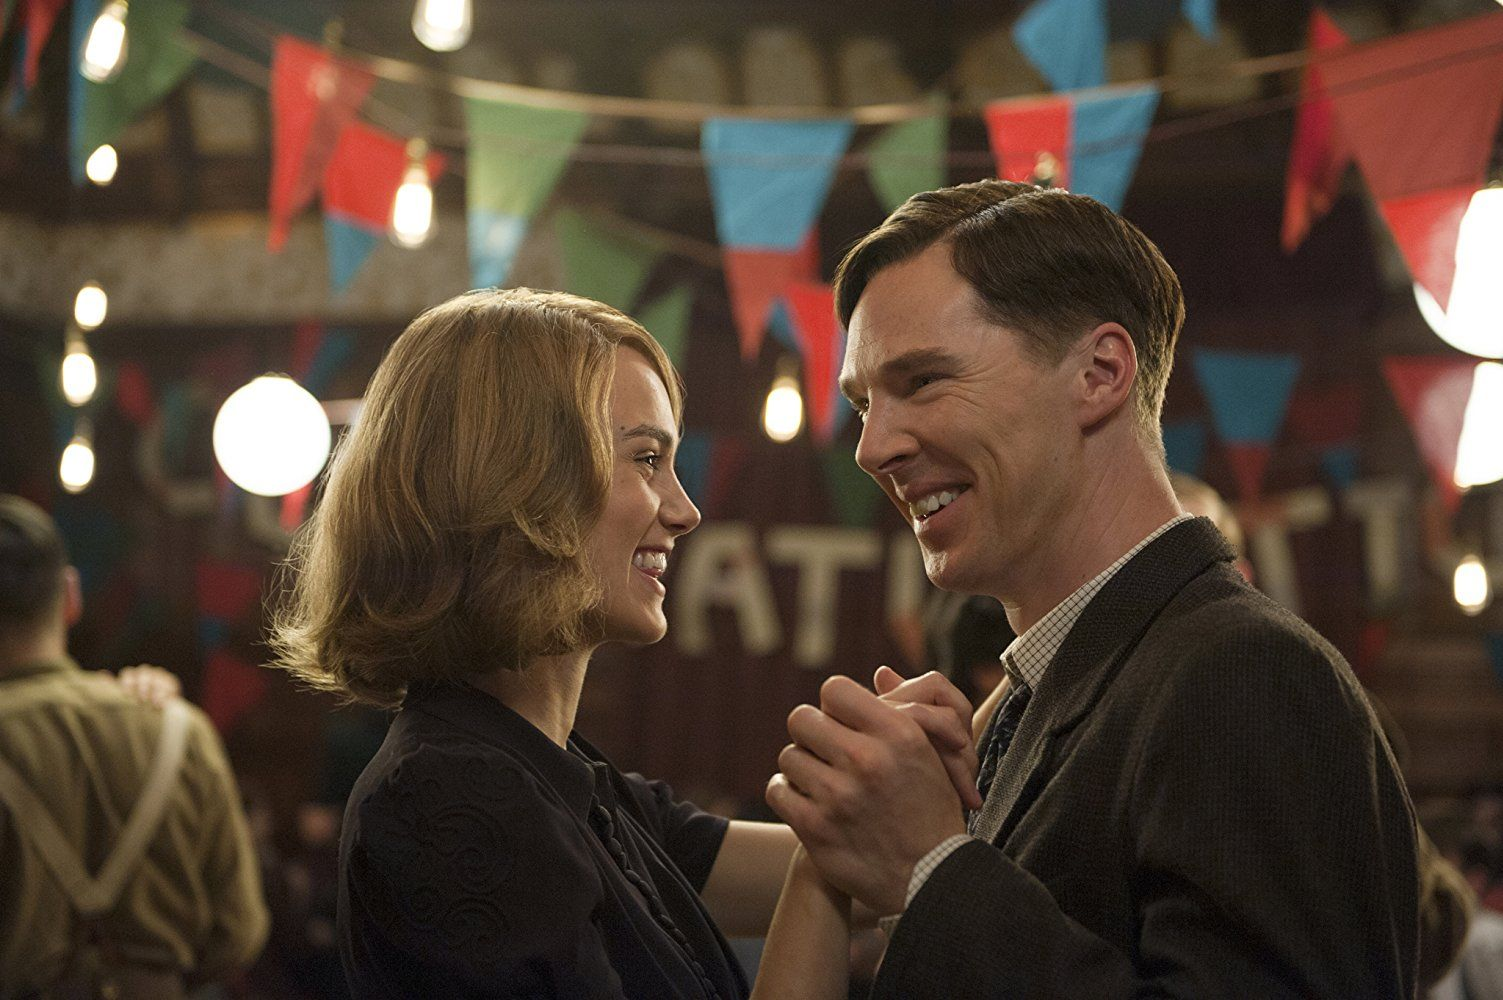 The Imitation Game: trama, cast e curiosità del film con Ben